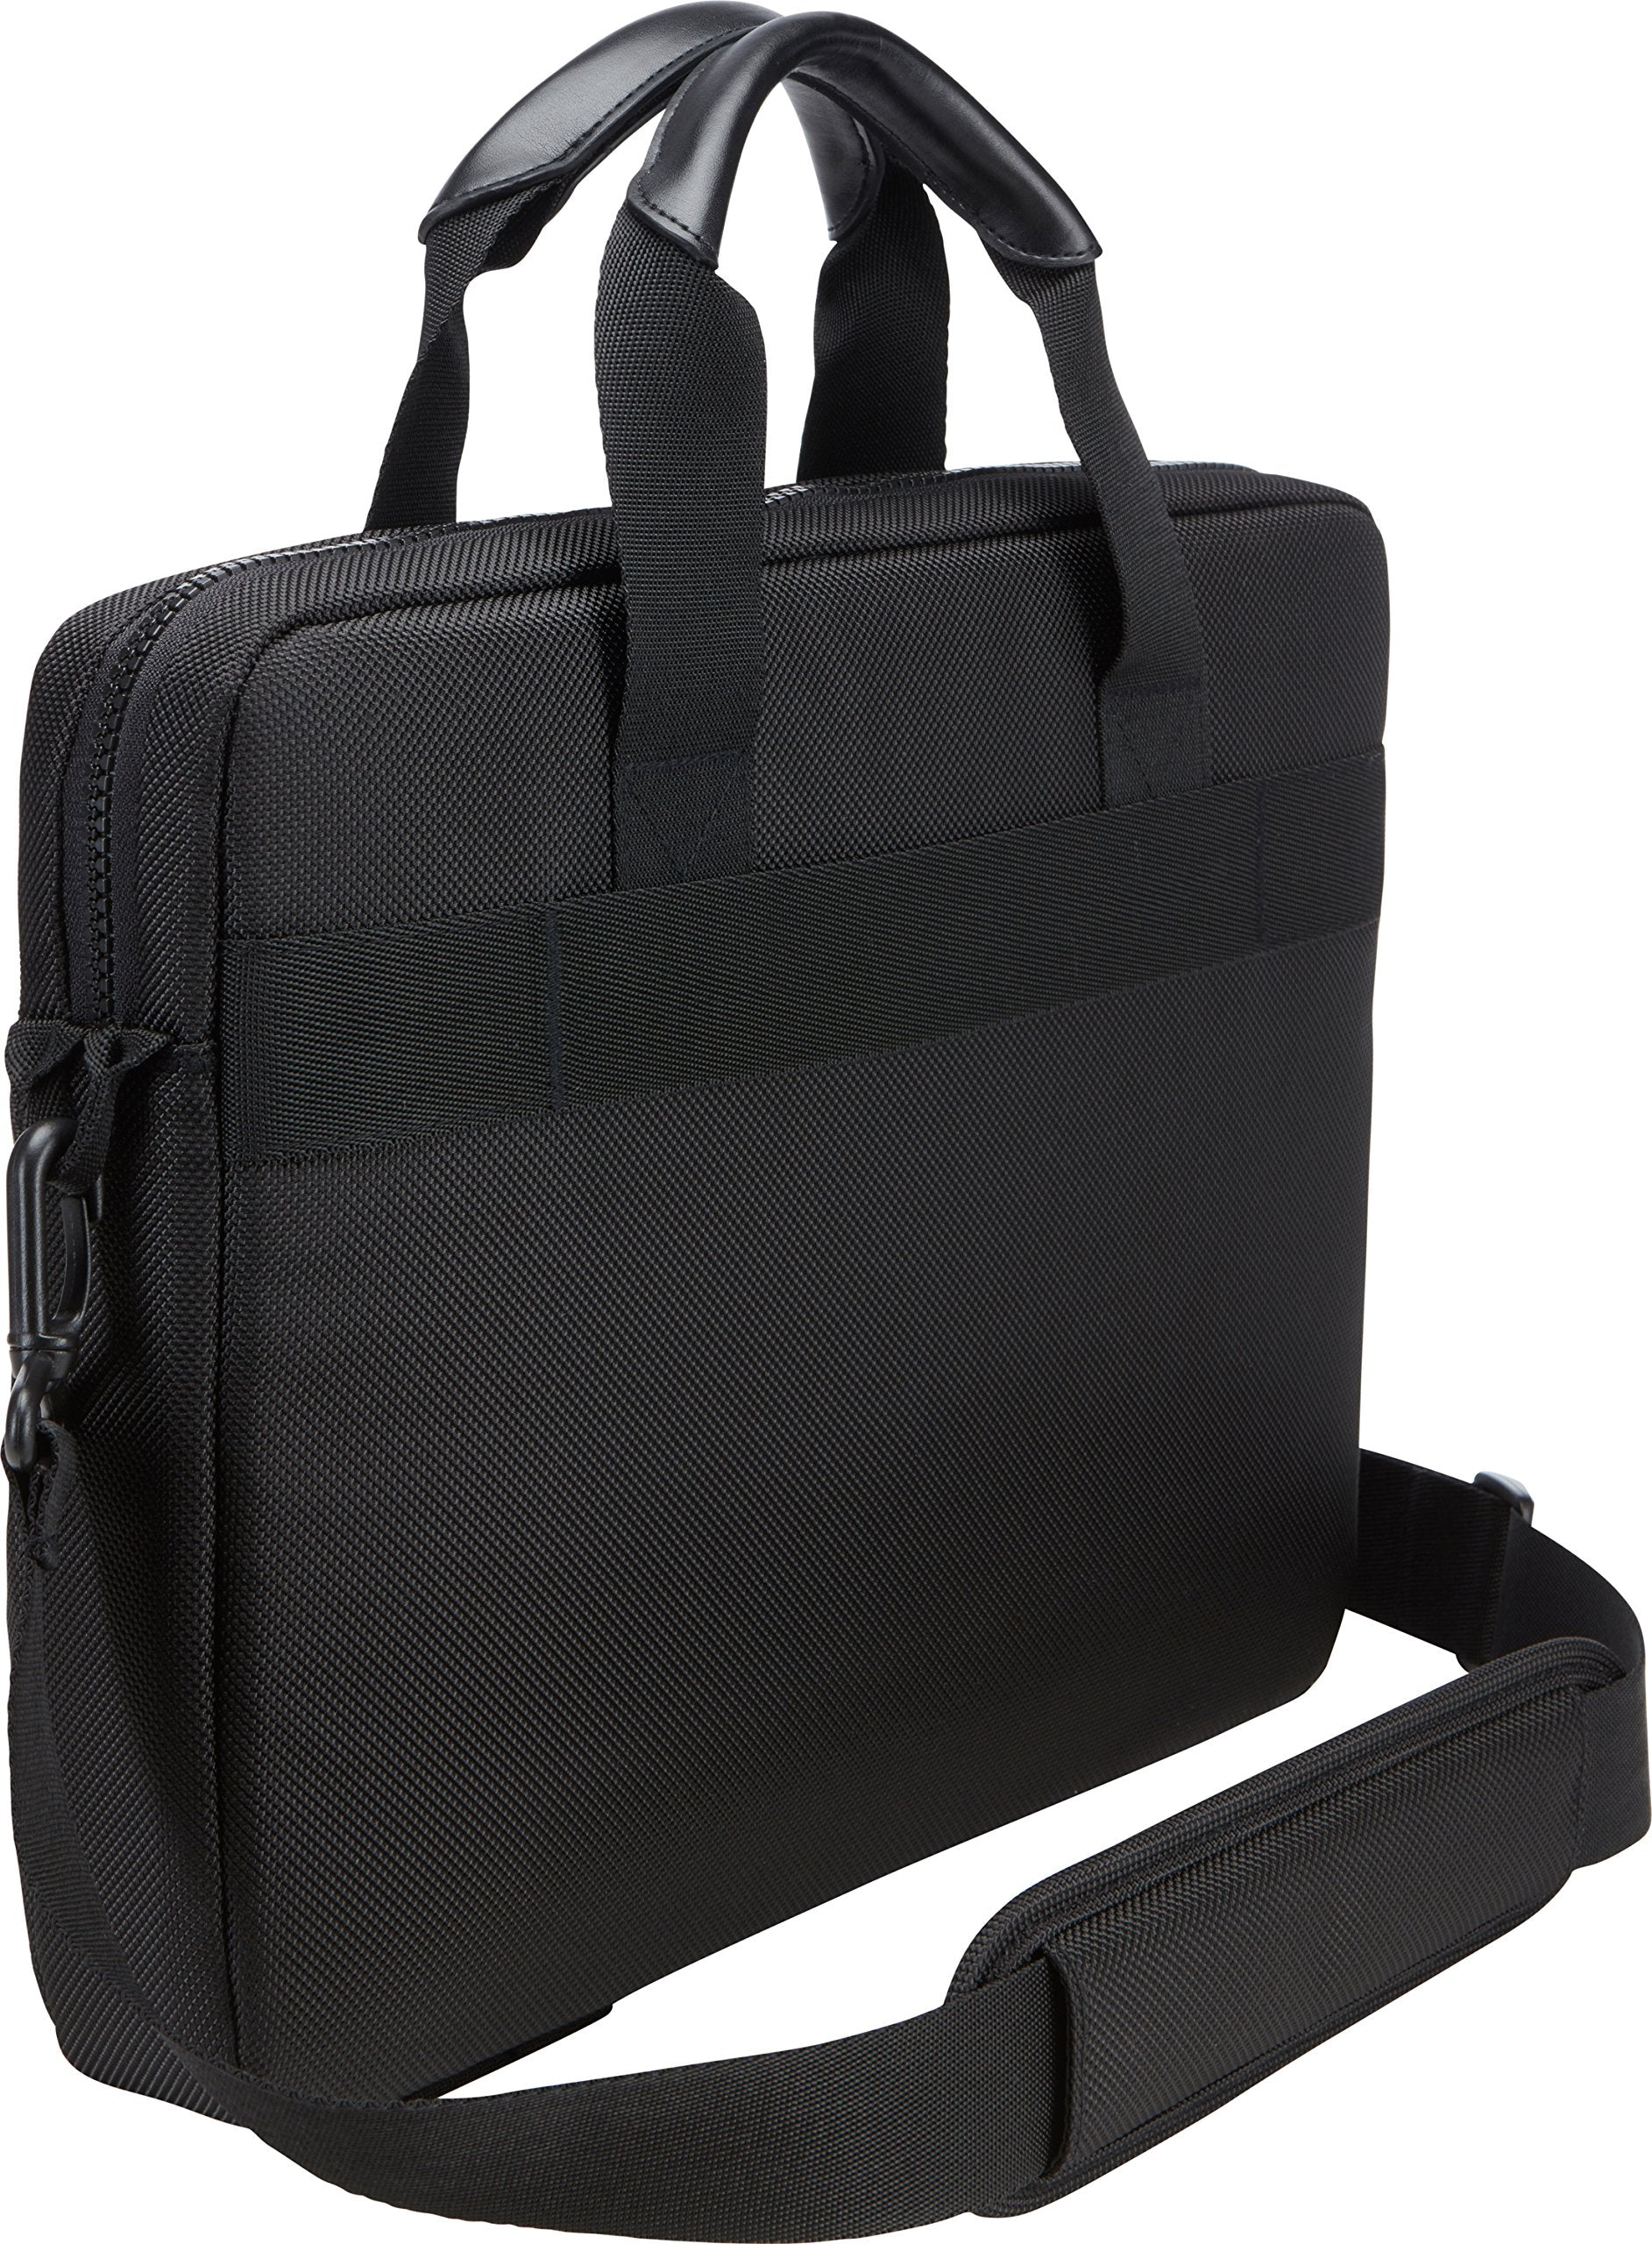 Case Logic Bryker 13.3 Inch Laptop Attache Briefcases, Black (3203343) - yrGear